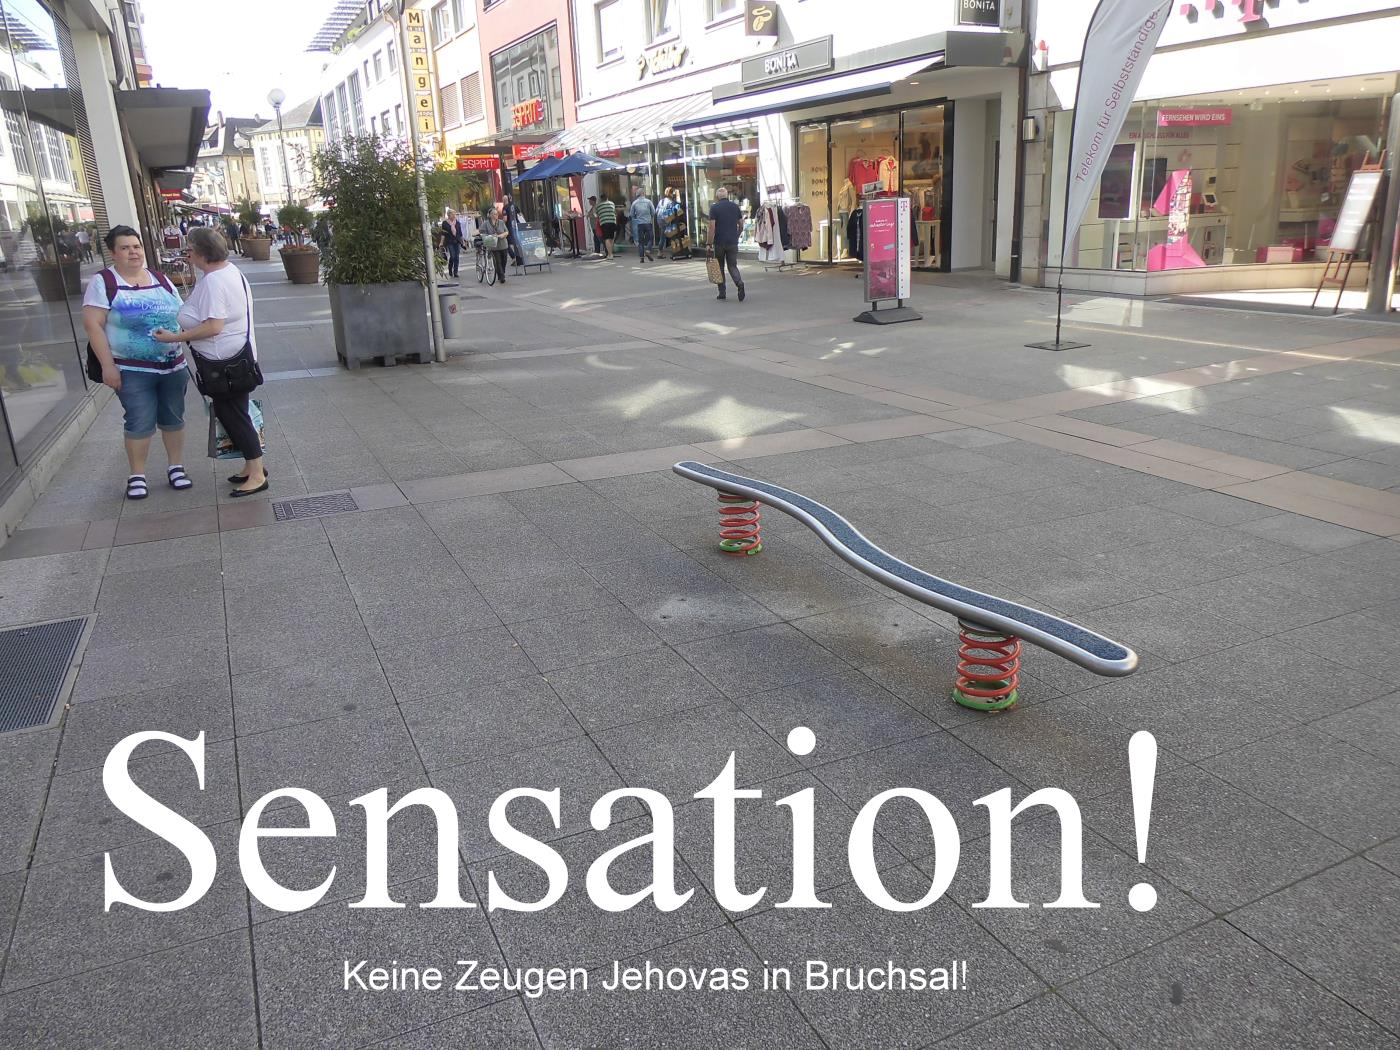 Jehovah's Witnesses do not show up in Bruchsal